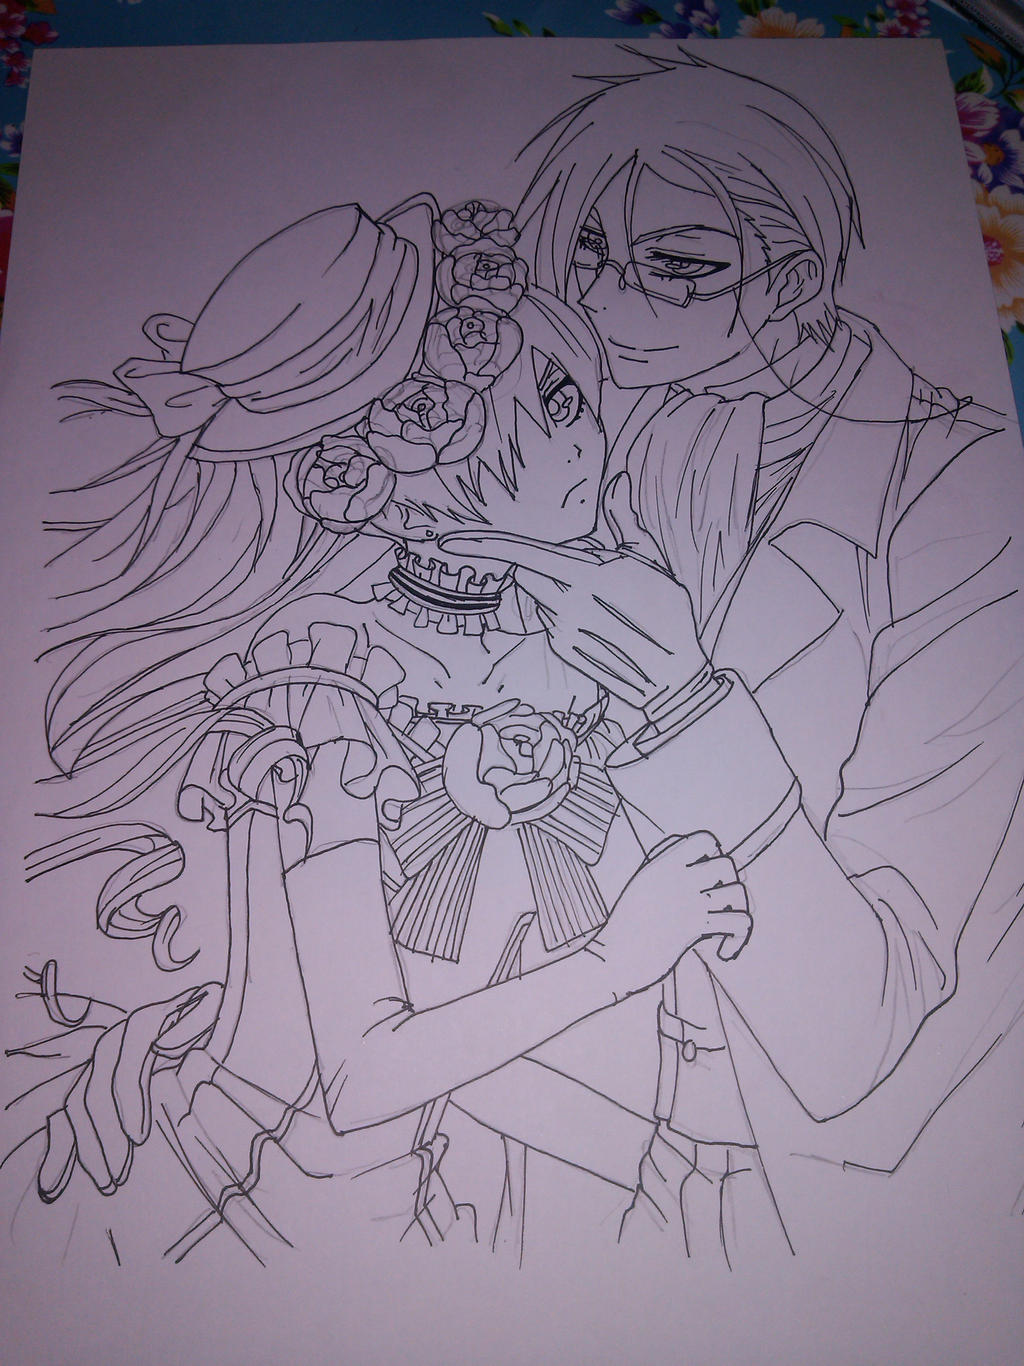 Black Butler - Ciel/Sebastian Sketch by asha0